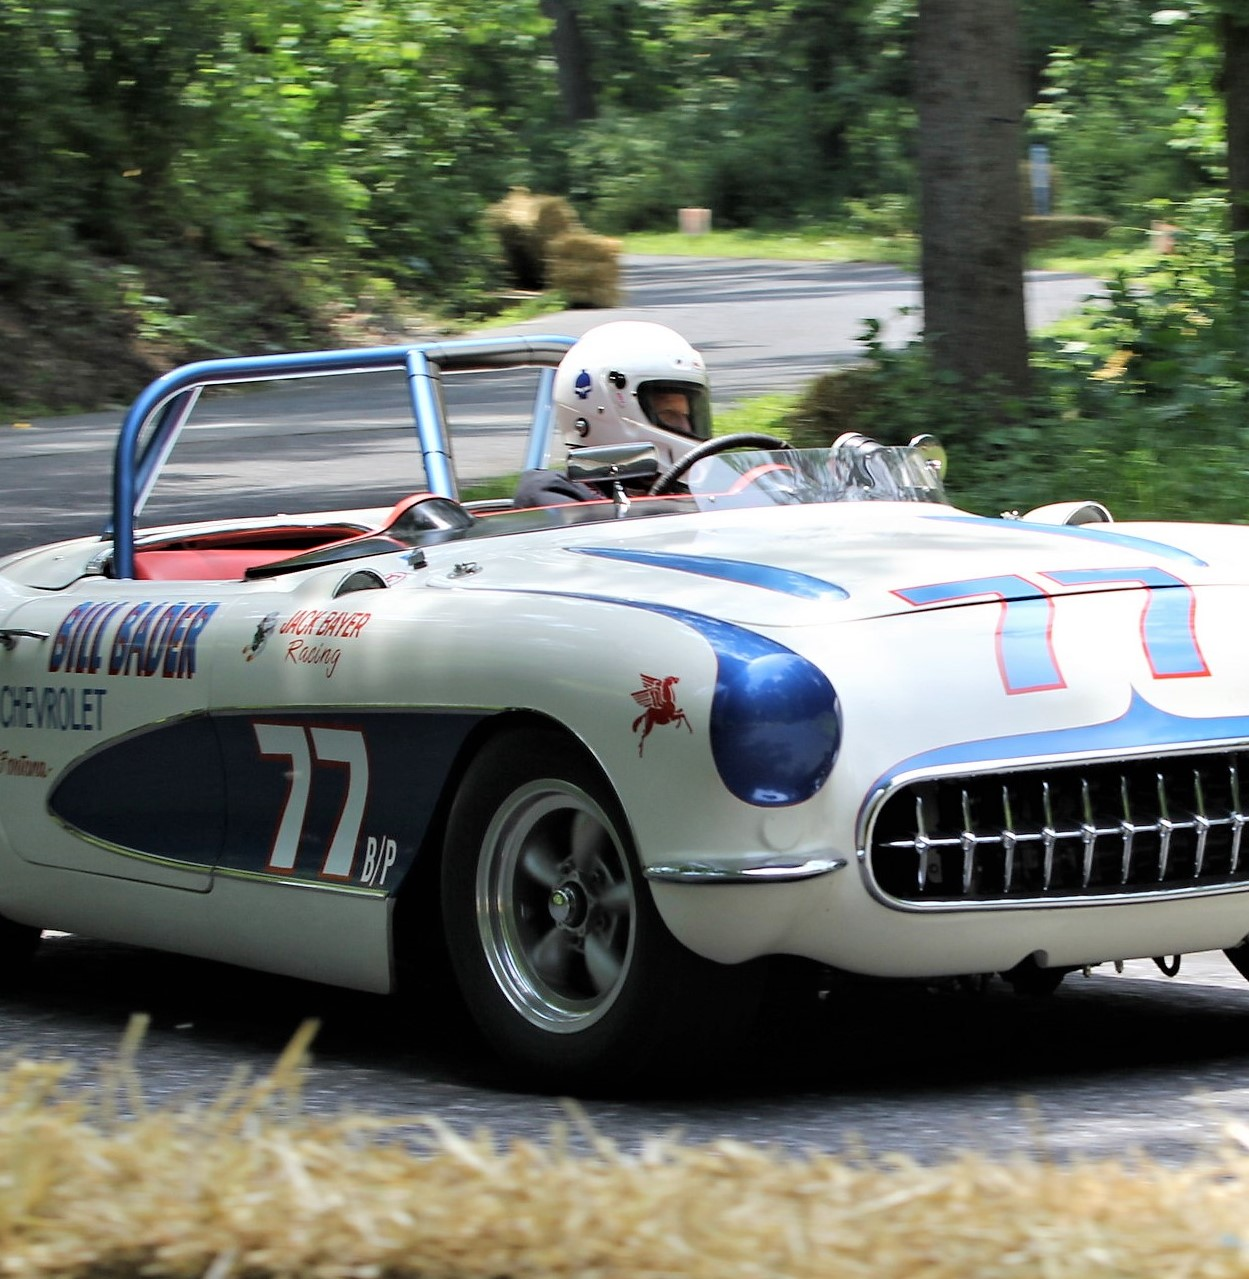 Concours And Events: Hershey, The Great Race Coming Up